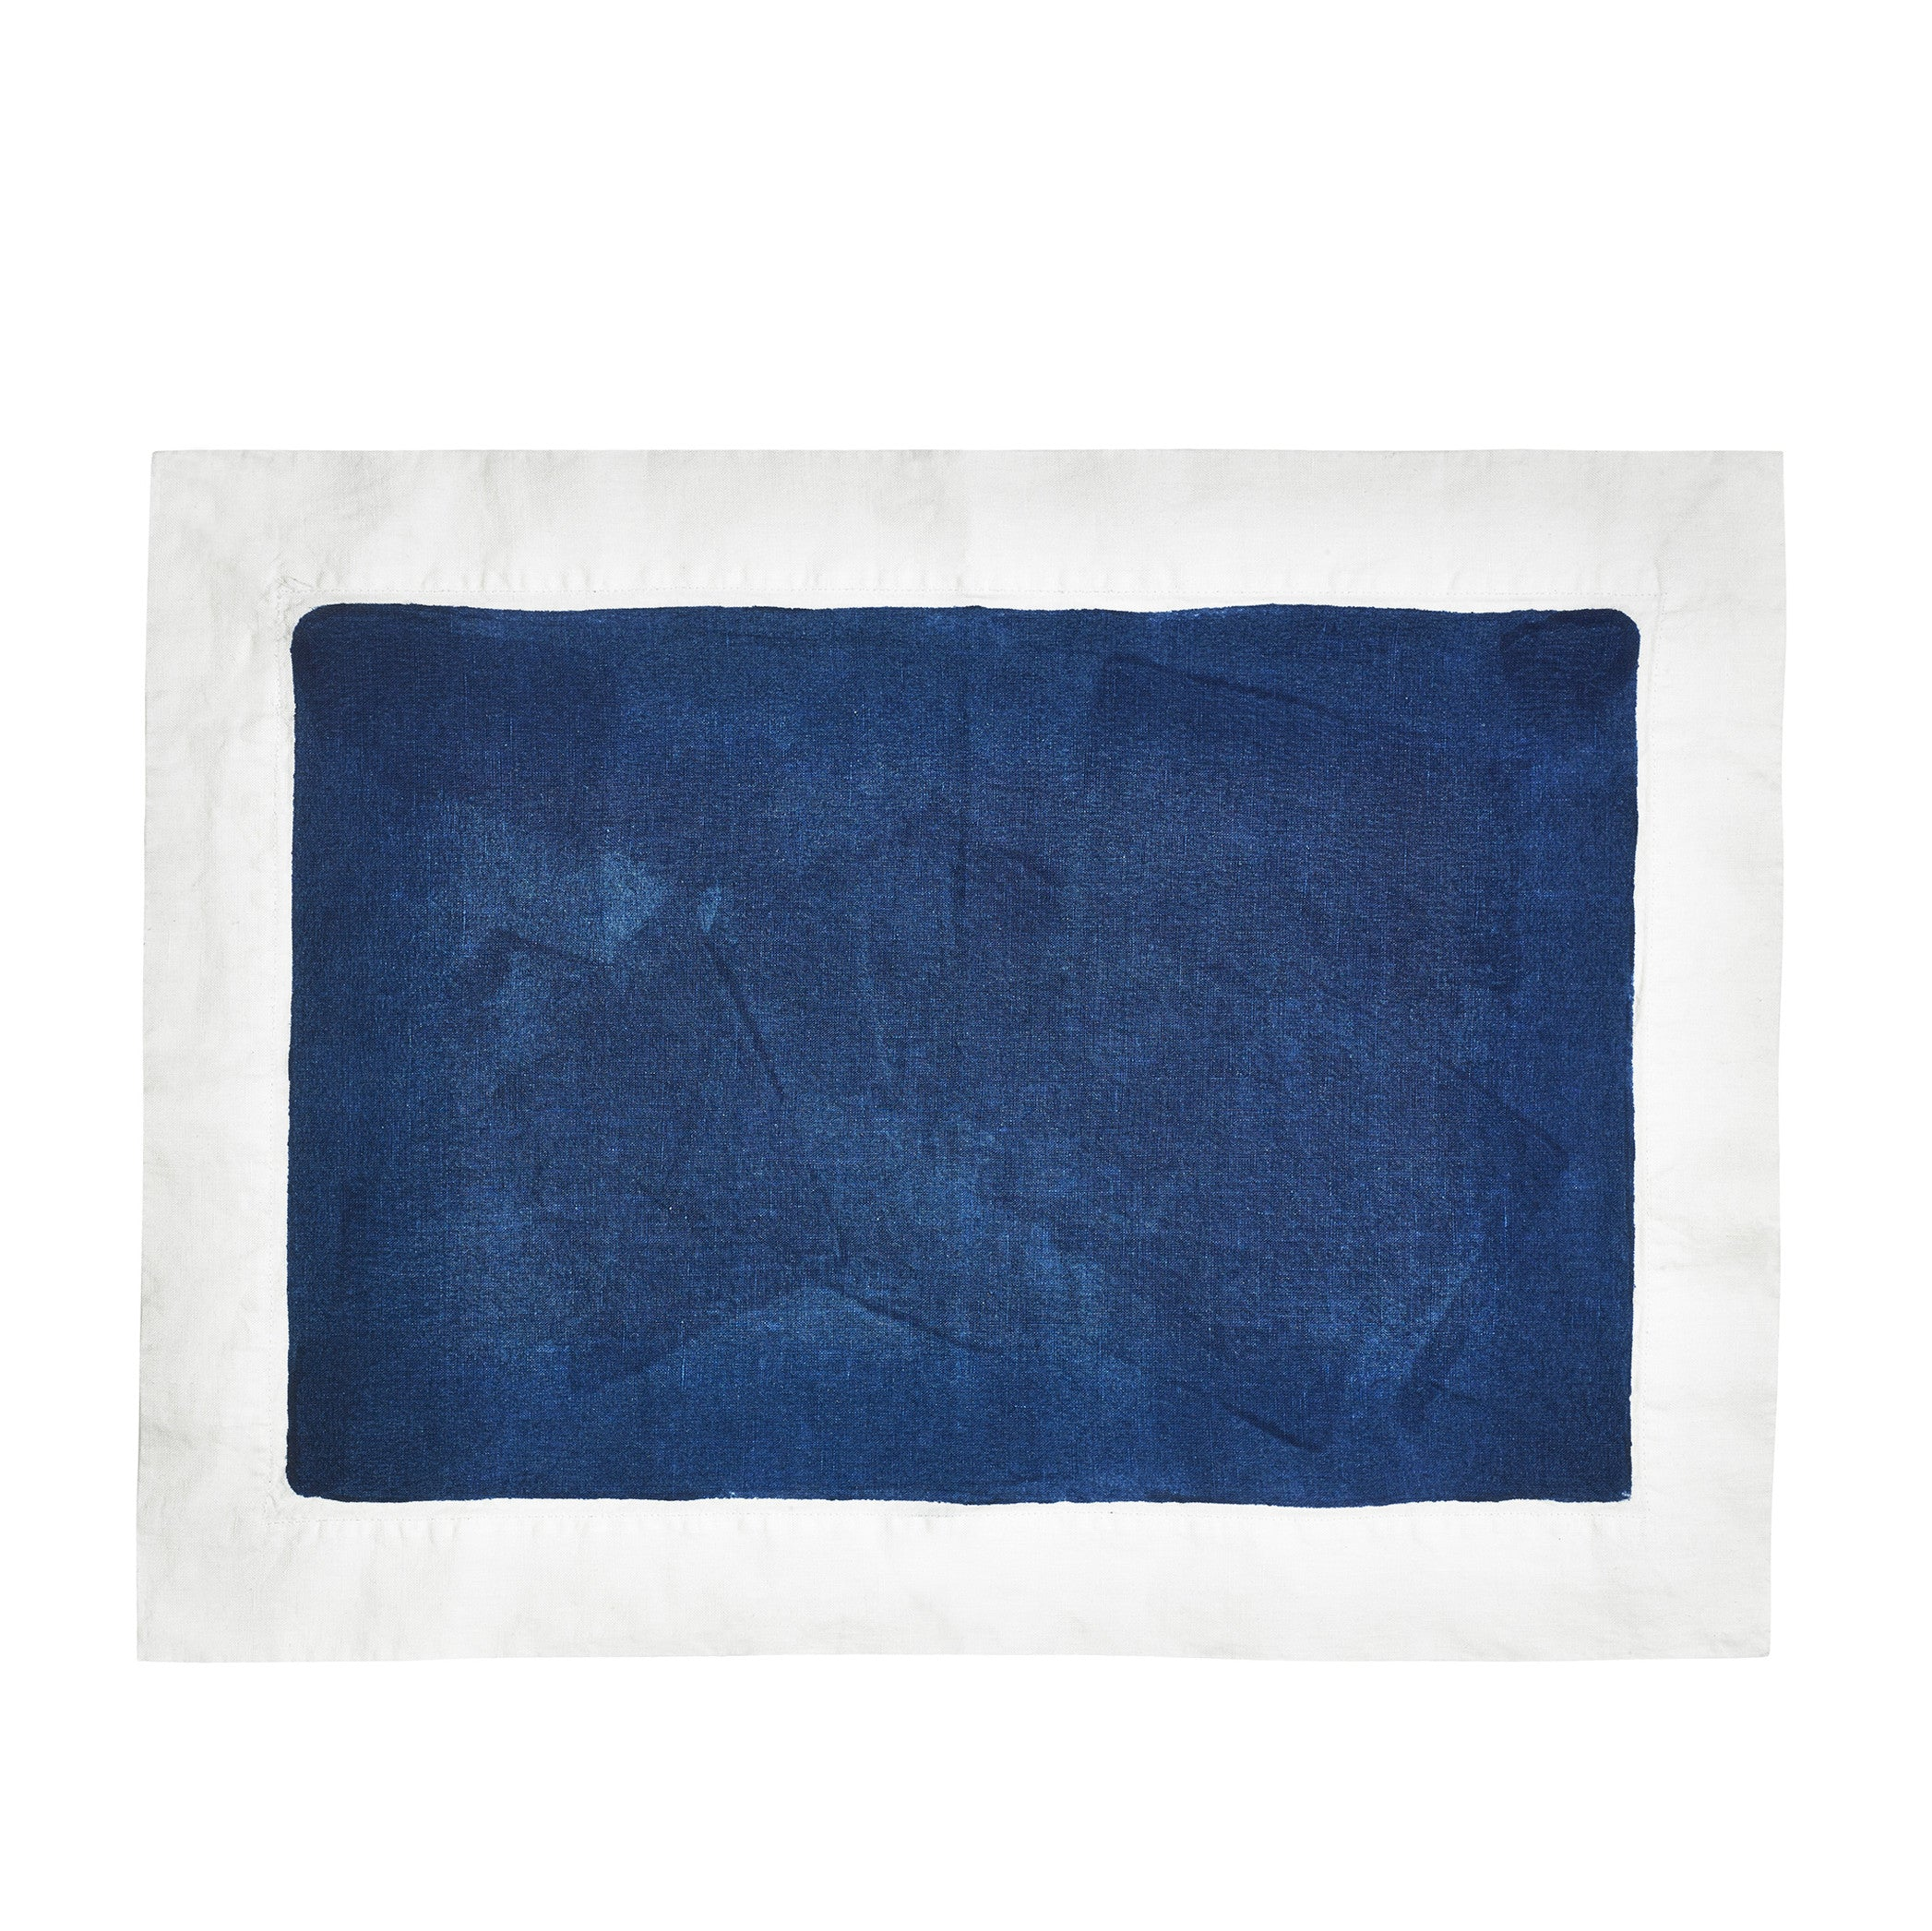 Hand Painted Full Field Linen Placemat in Midnight Blue